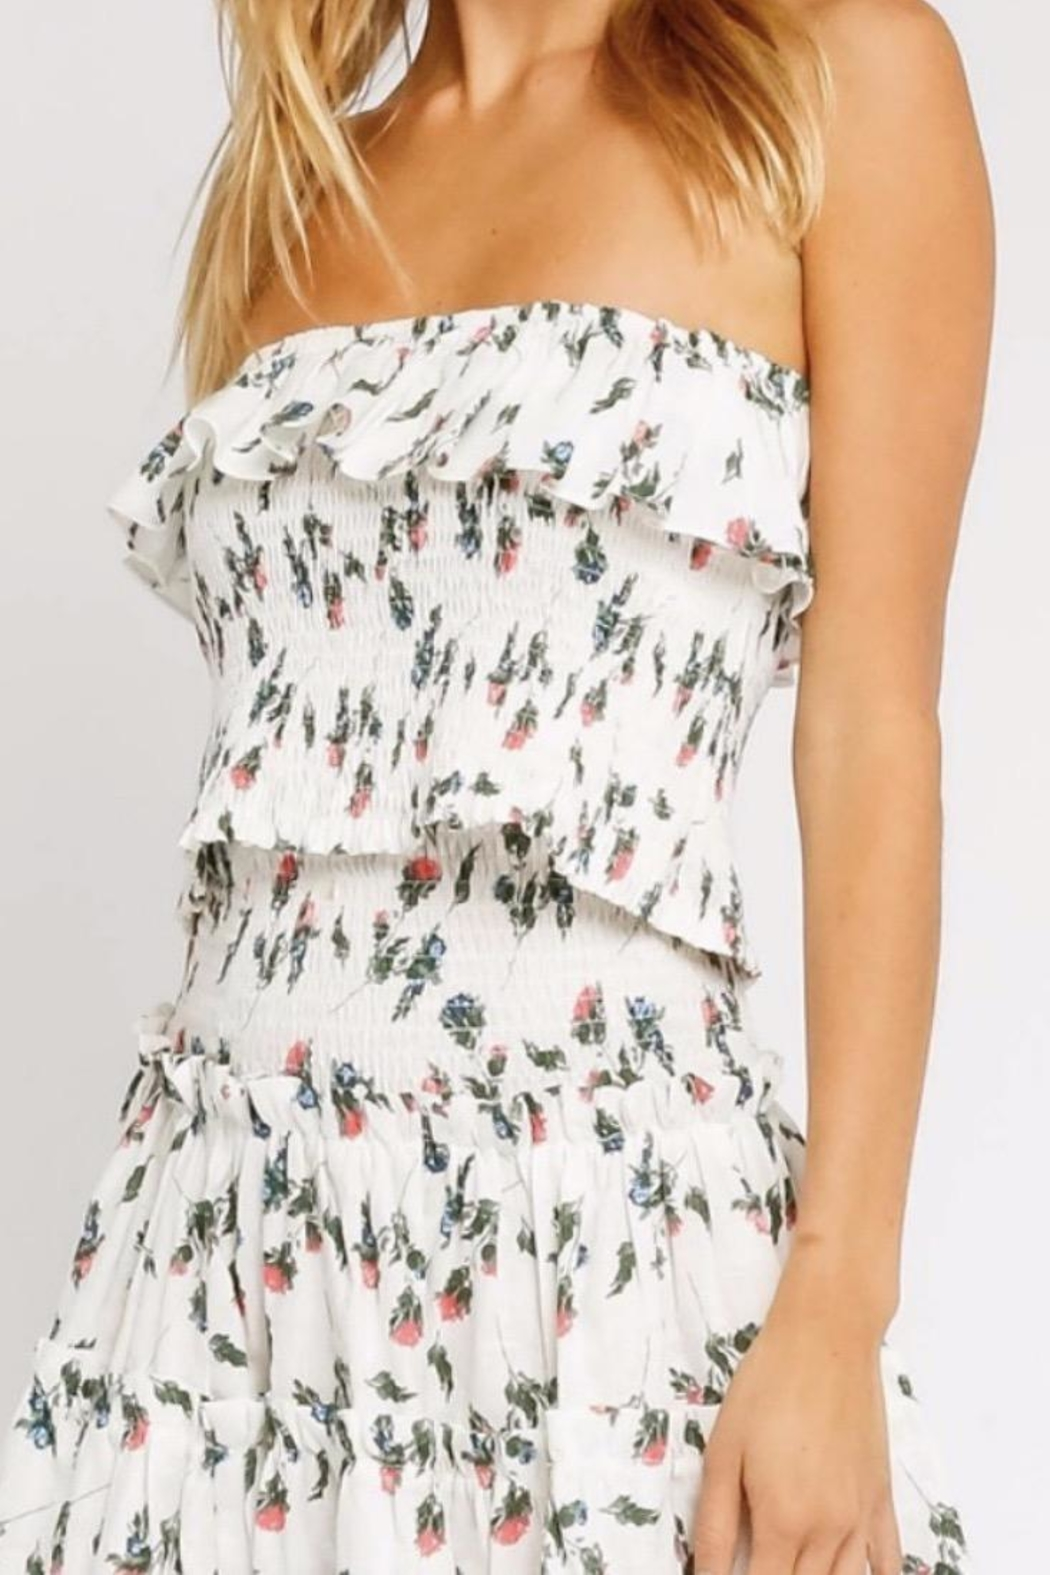 Olivaceous Strapless Floral Crop Top - Main Image